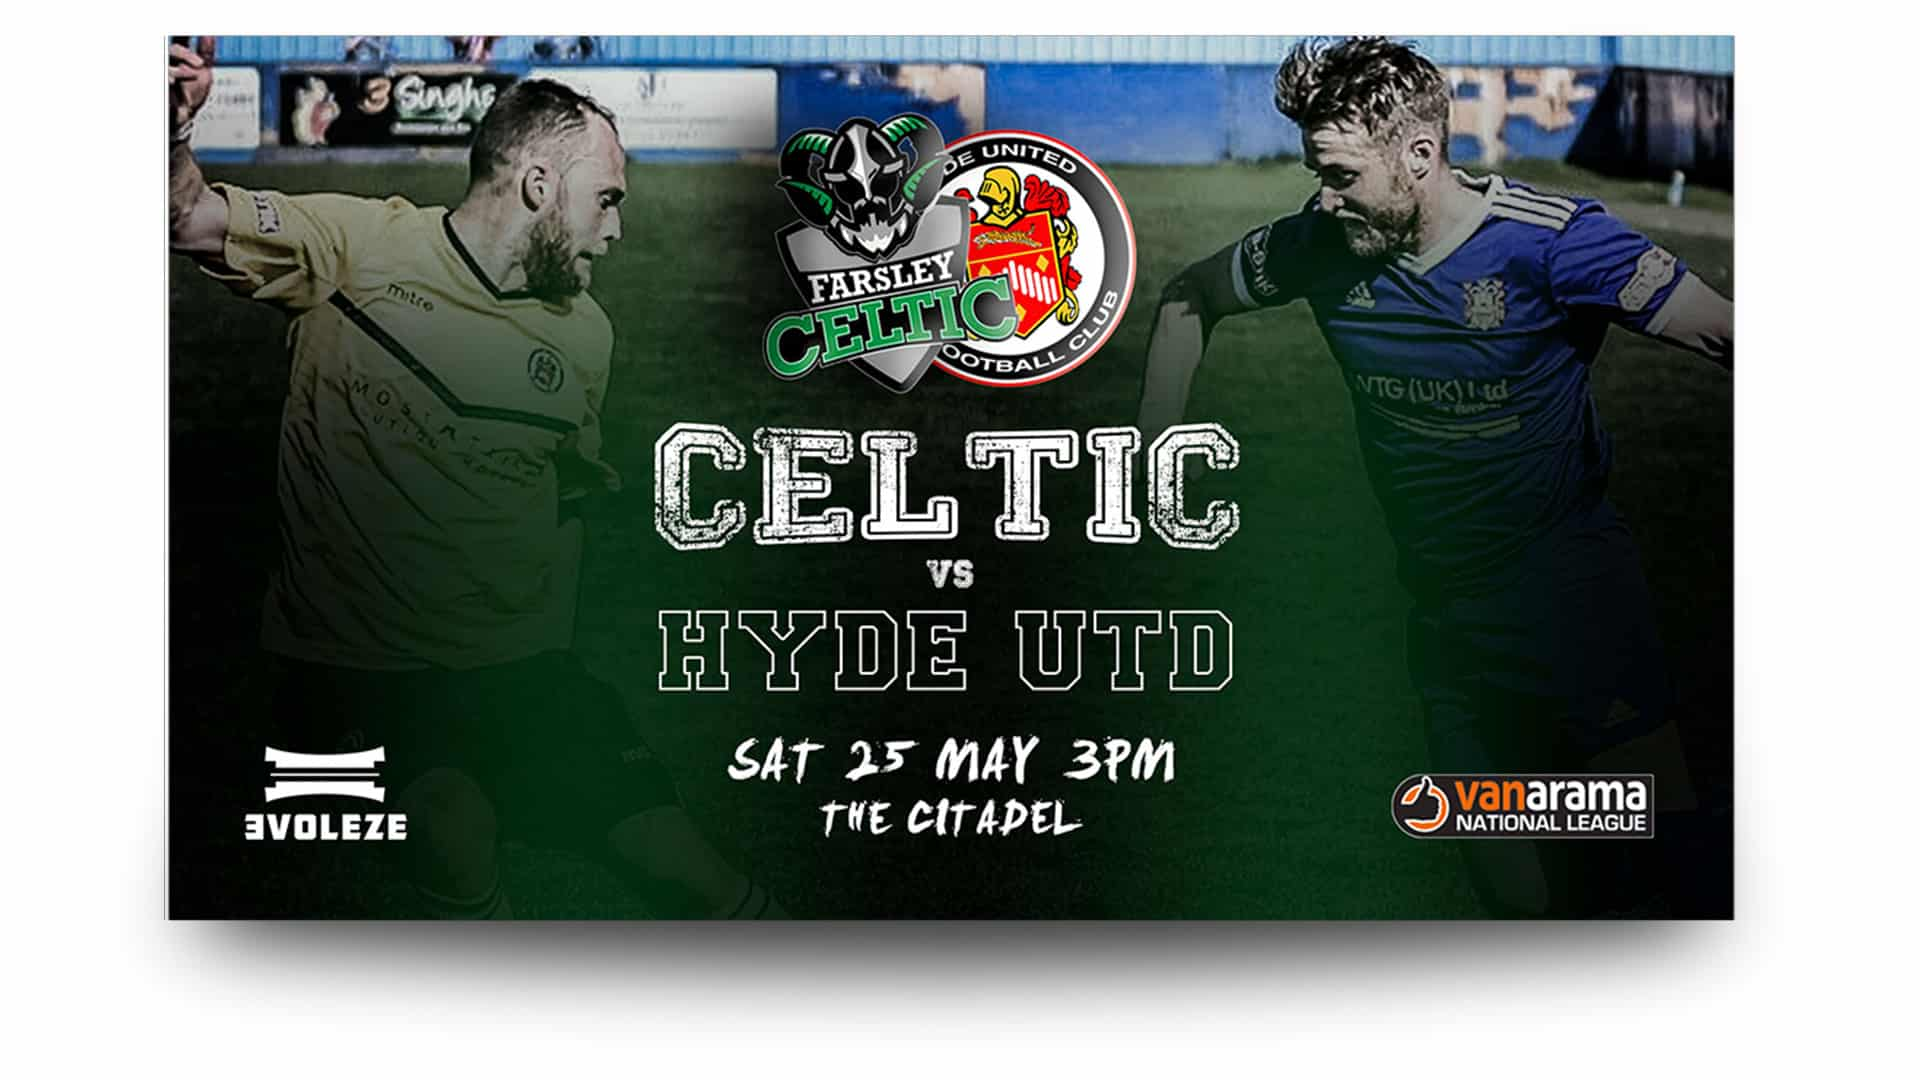 farsely celtic - matchday graphics set